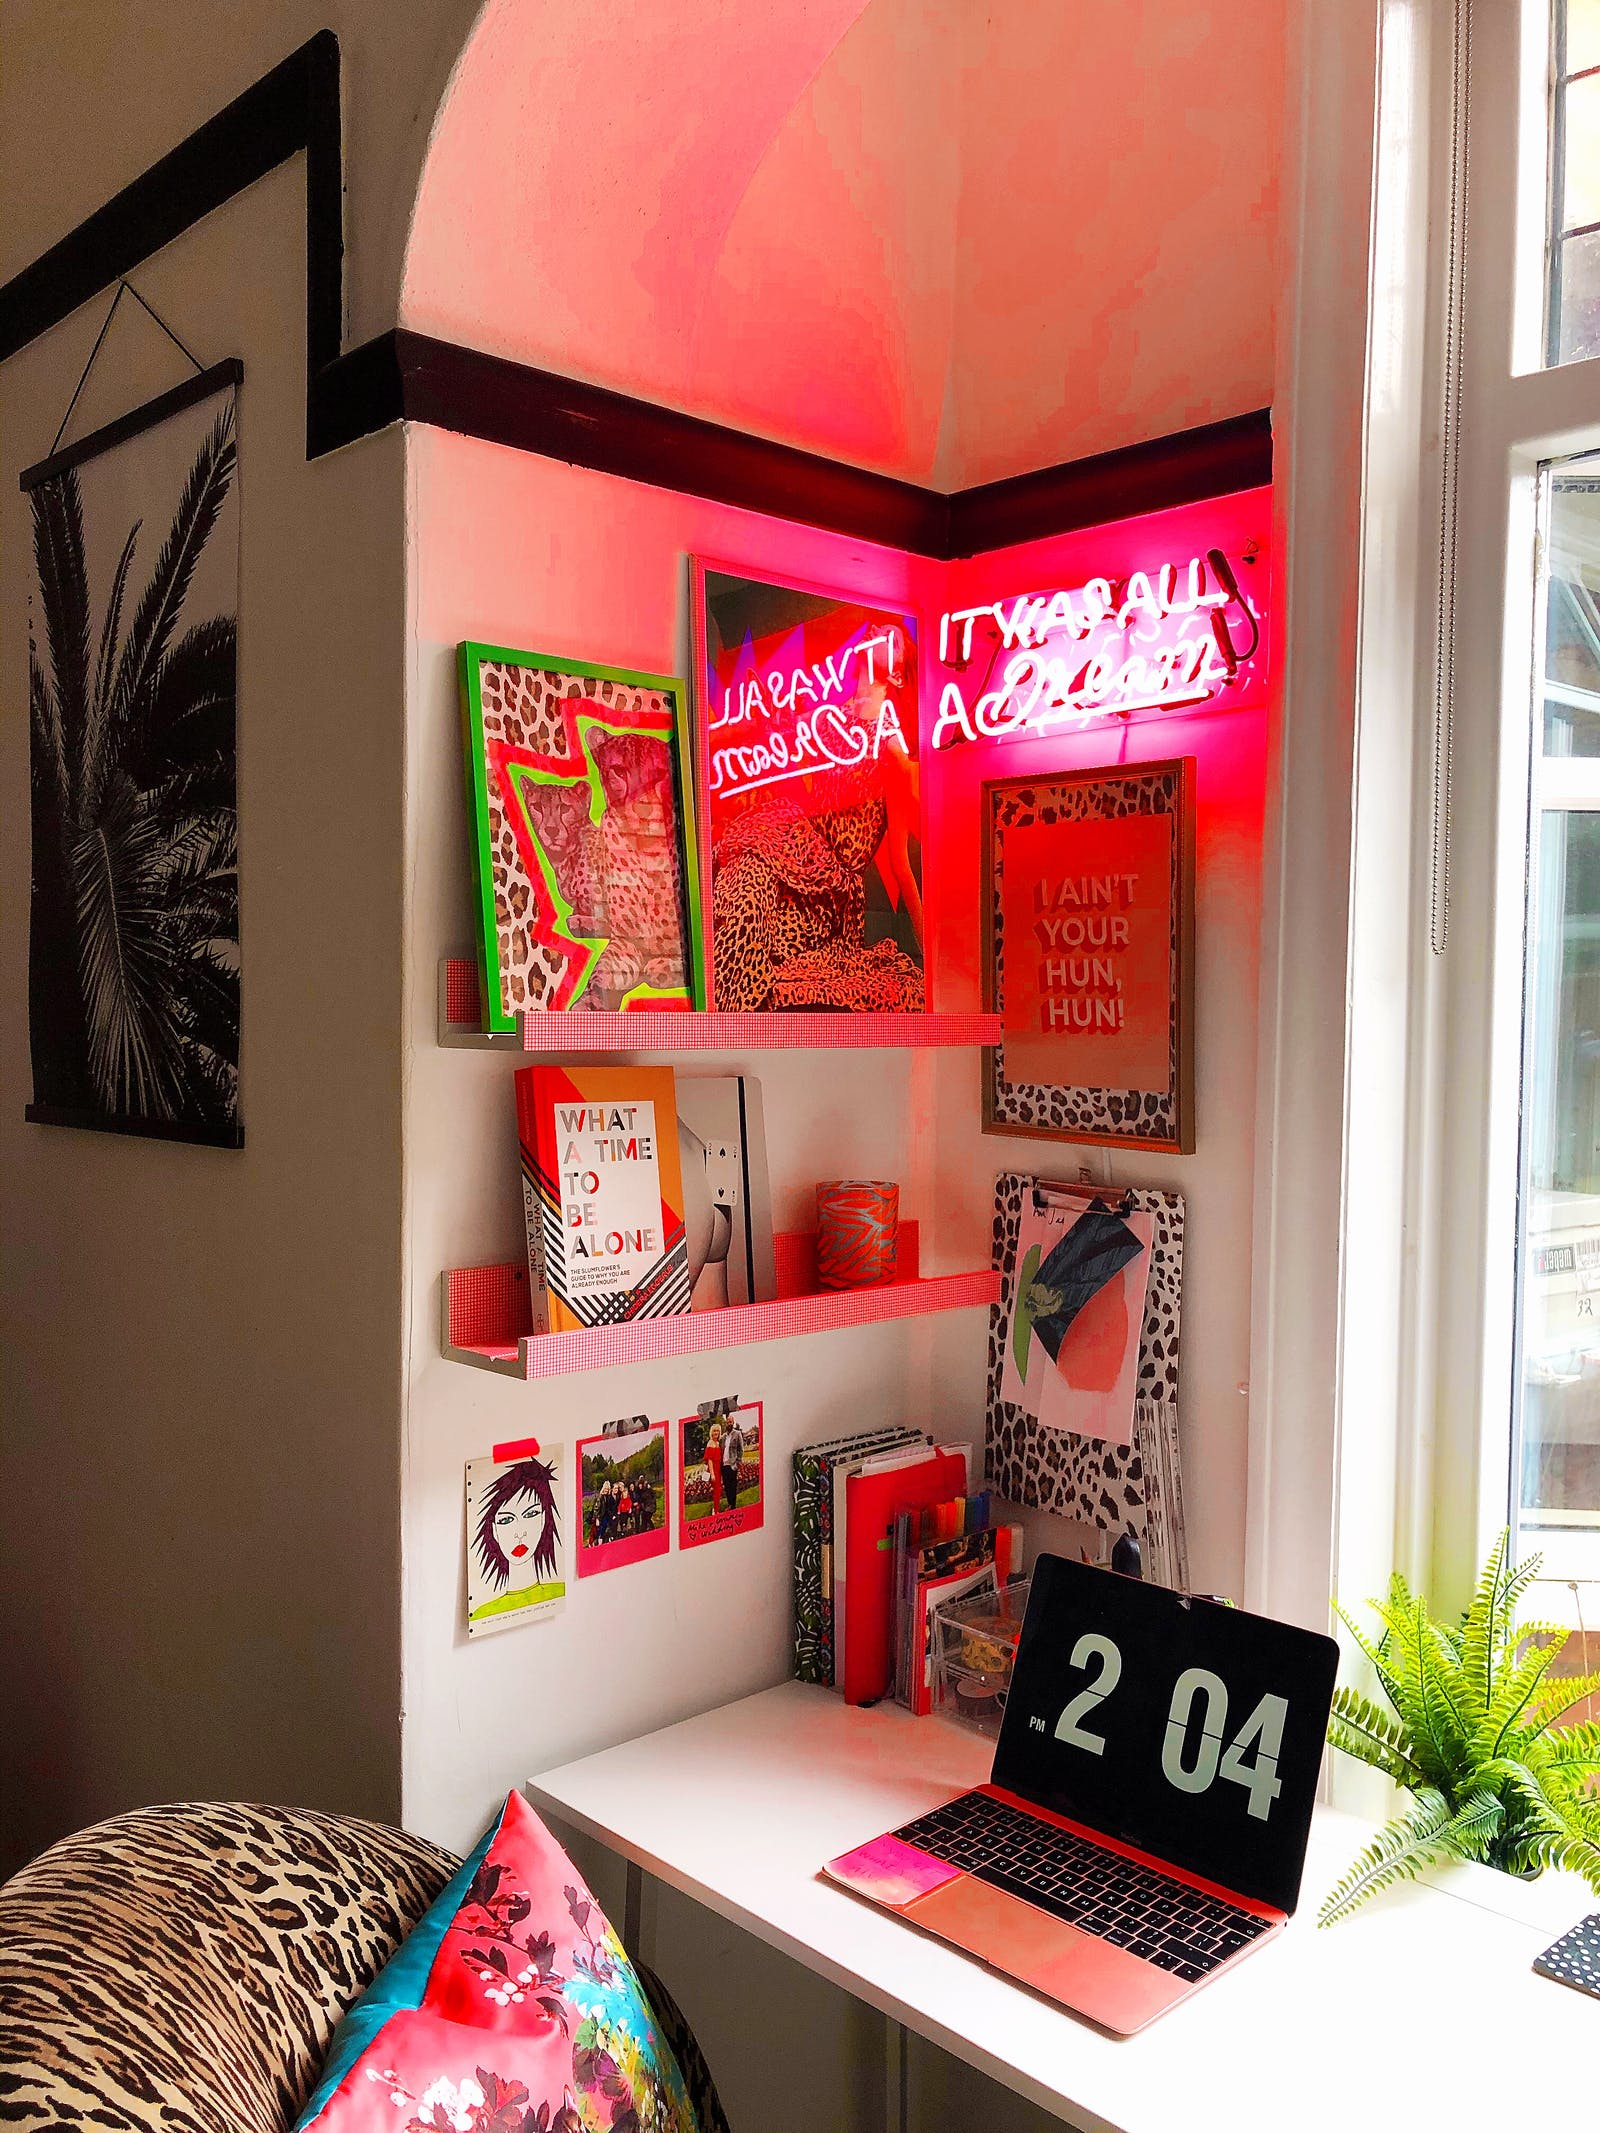 RHOI colourful desk set up with pink neon sign and animal print chair